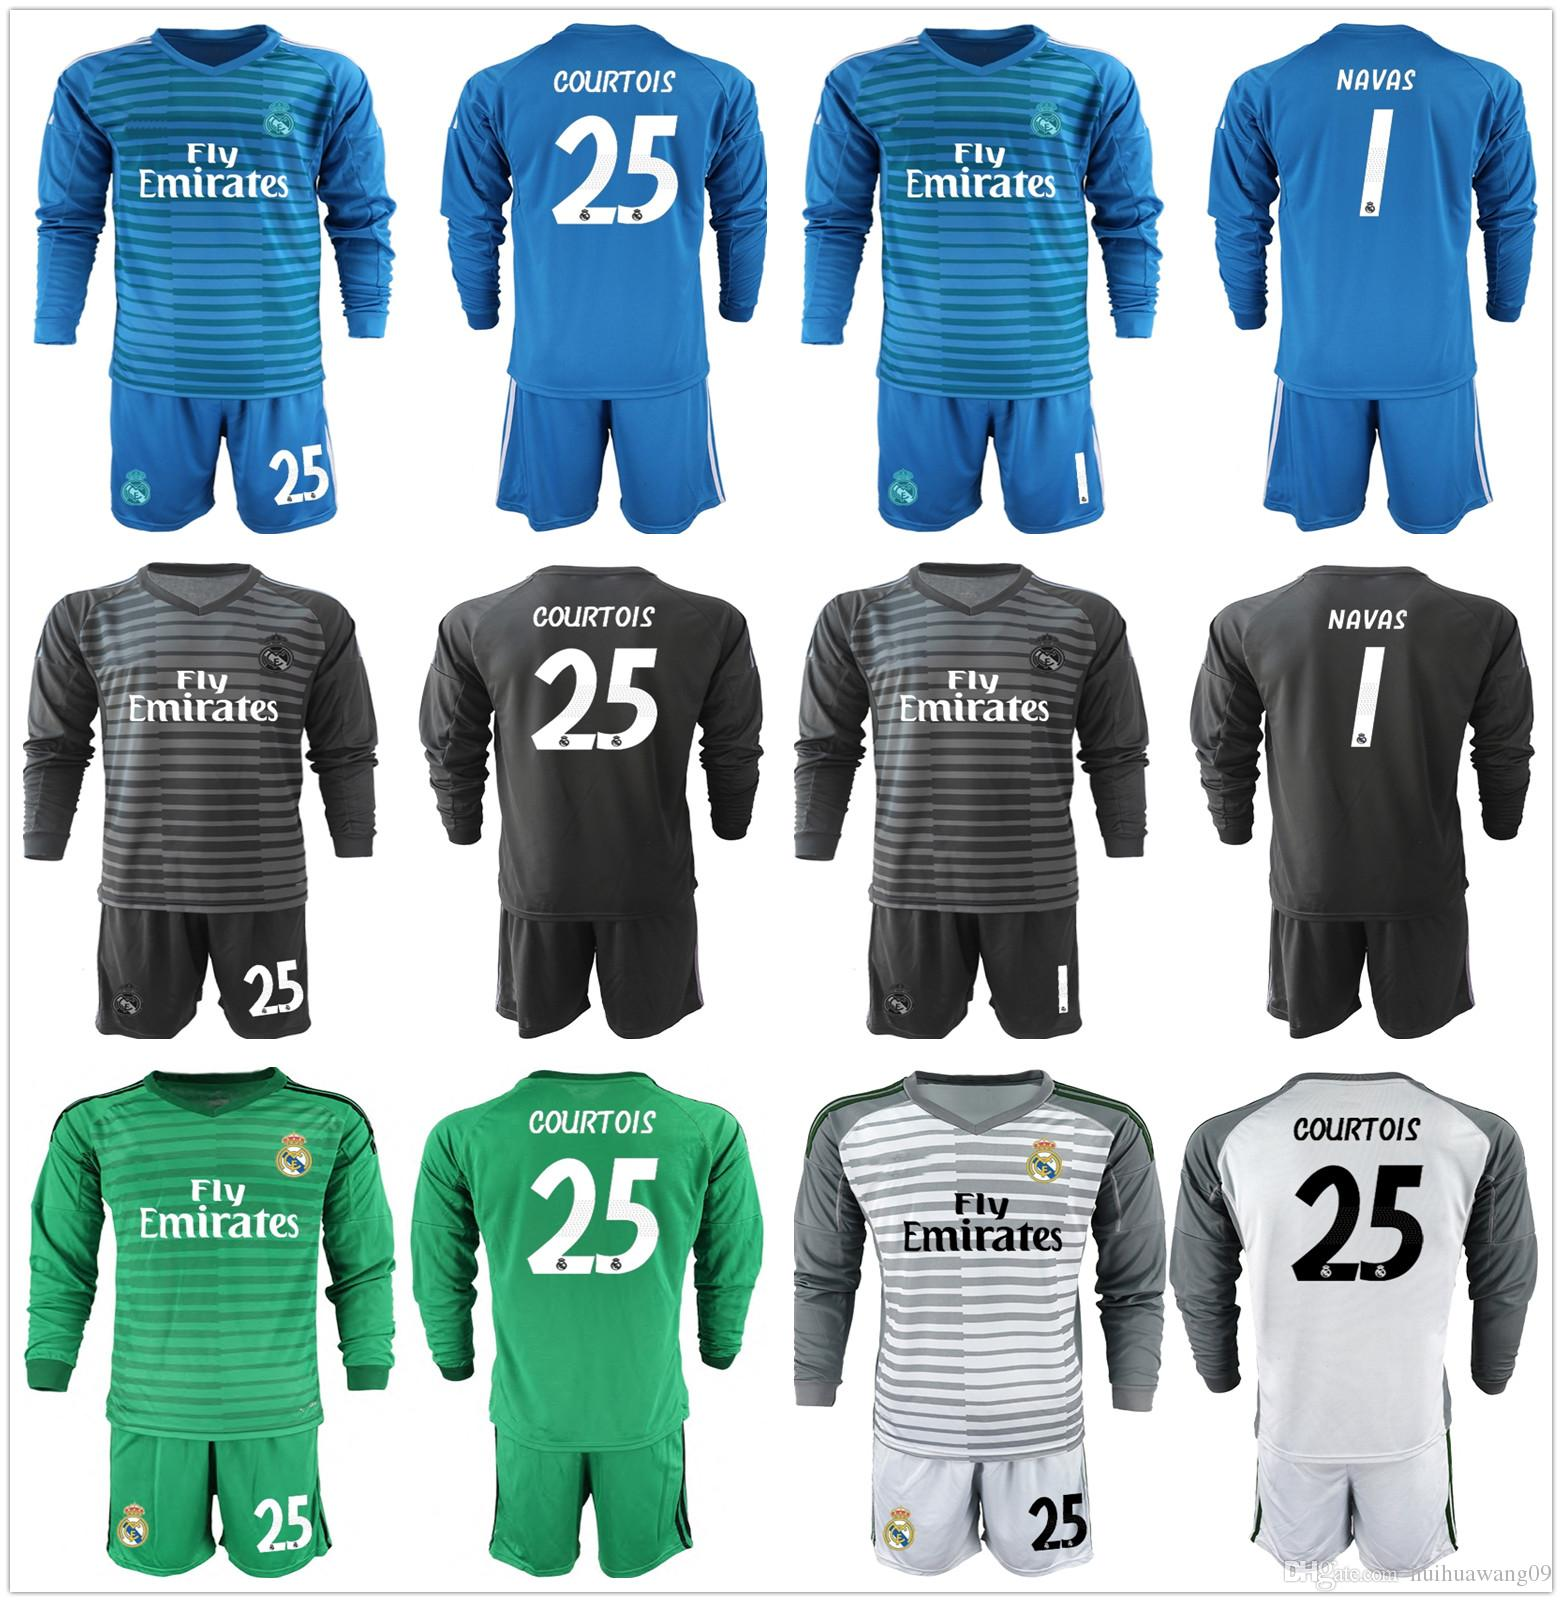 3687da0c5 2019 2018 2019 Long Sleeve Real Madrid Soccer Set Goalkeepe Kit Keylor Navas  25 Courtois Goalkeeper Madrid Jersey Bale Shirt Football Uniform Men From  ...